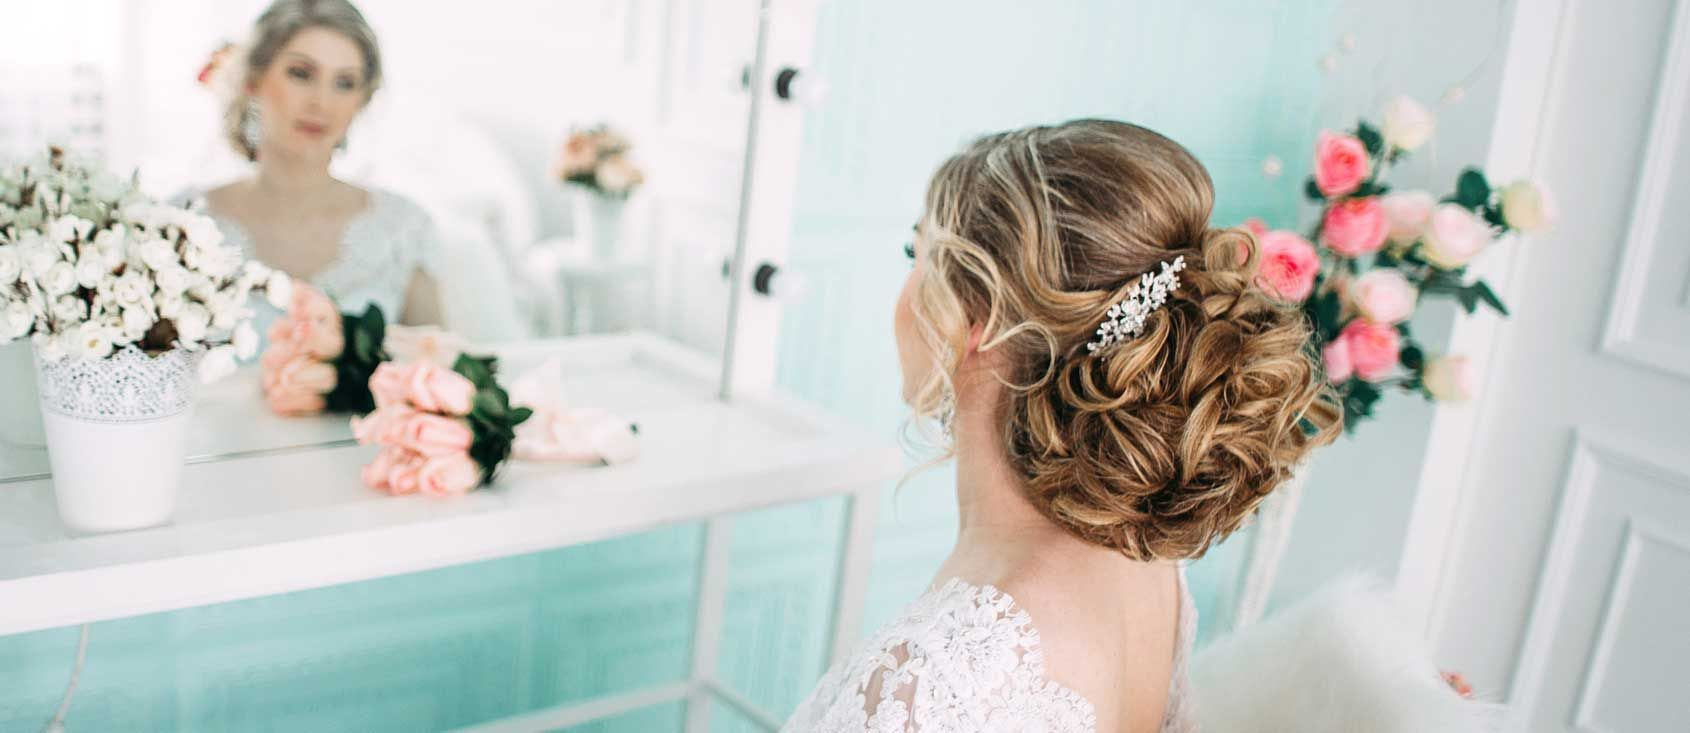 best wedding hairstyle trends 2019 | weddings & more